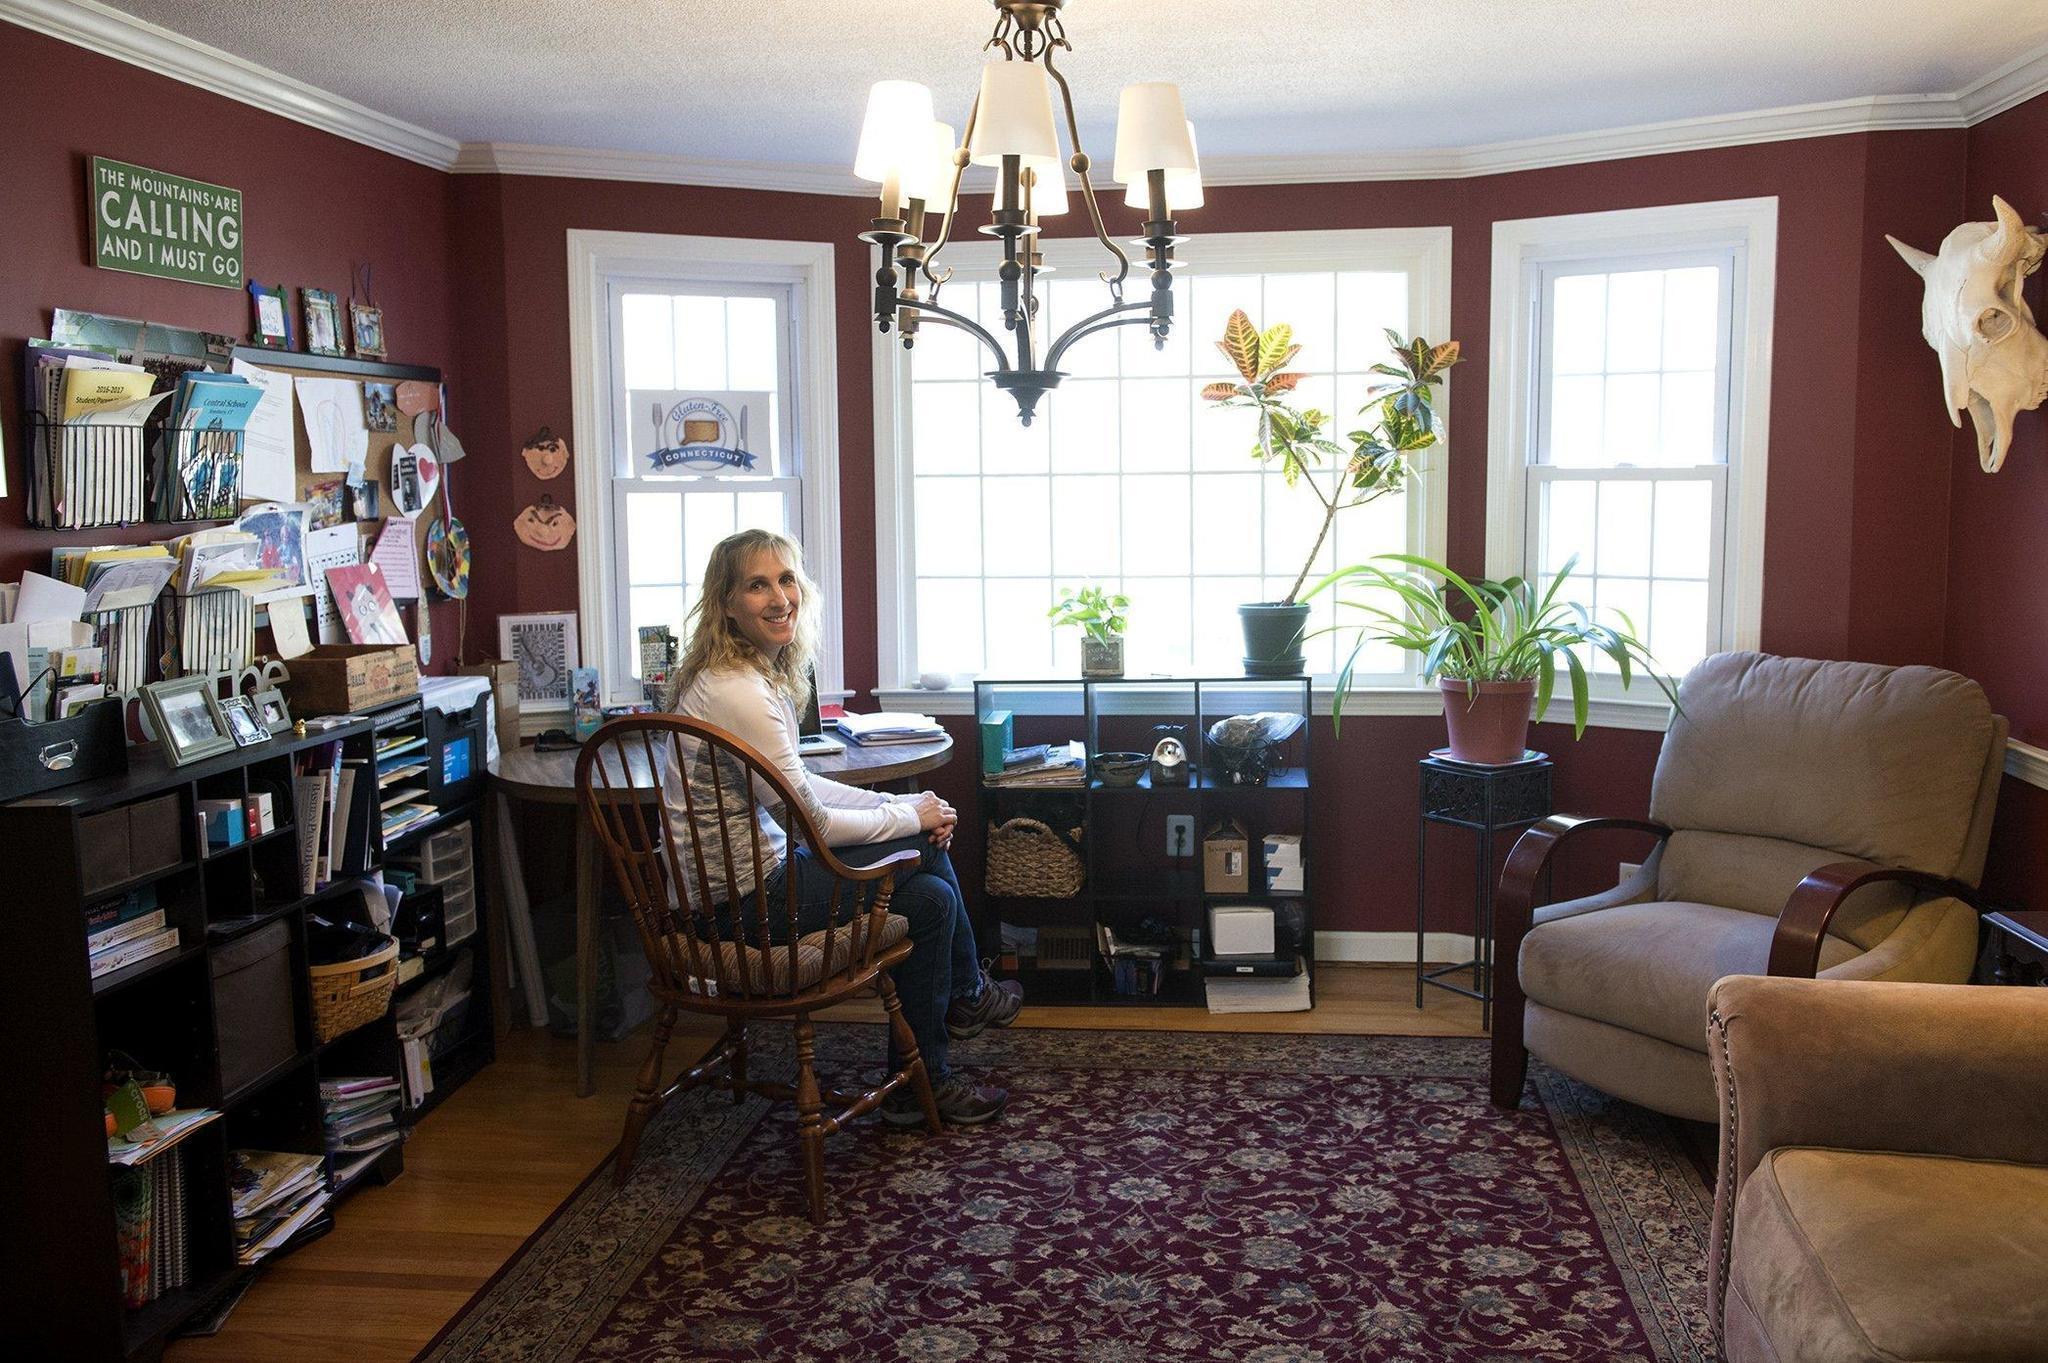 The Disappearing Dining Room: Casual Lifestyles, A Need For More Space Lead  To A Trend   Hartford Courant